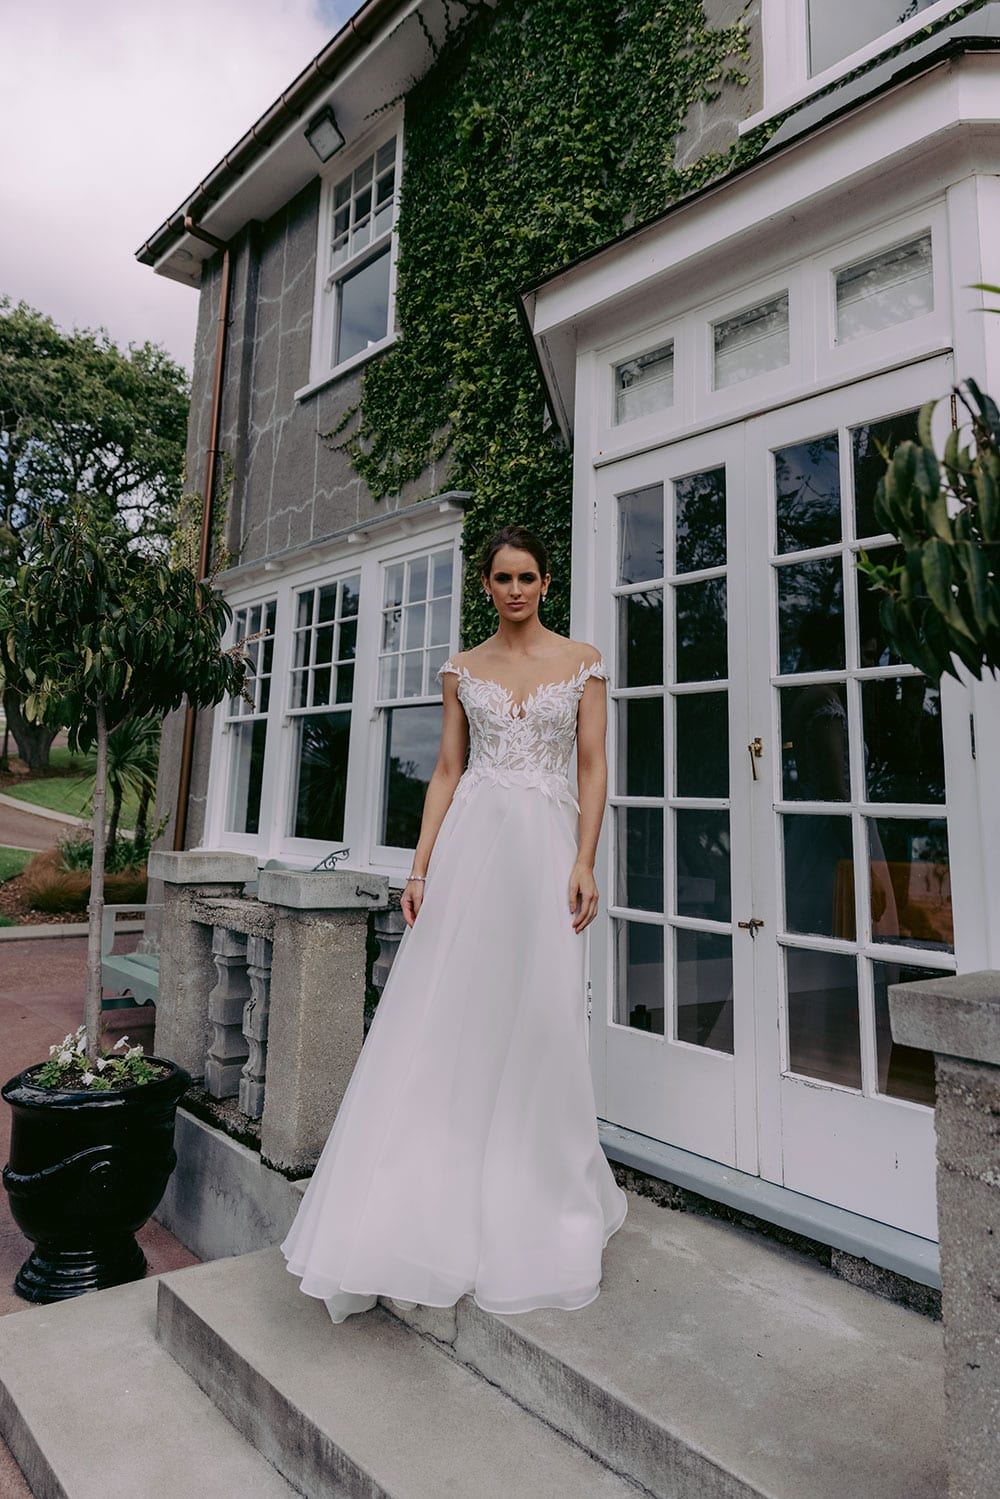 Ariana Wedding gown from Vinka Design - This gorgeous gown features delicate leaf lace hand-appliqued throughout the semi-sheer, structured bodice and up over the shoulder and skirt made of dreamy satin organza layers. Model wearing gown on steps outside country home